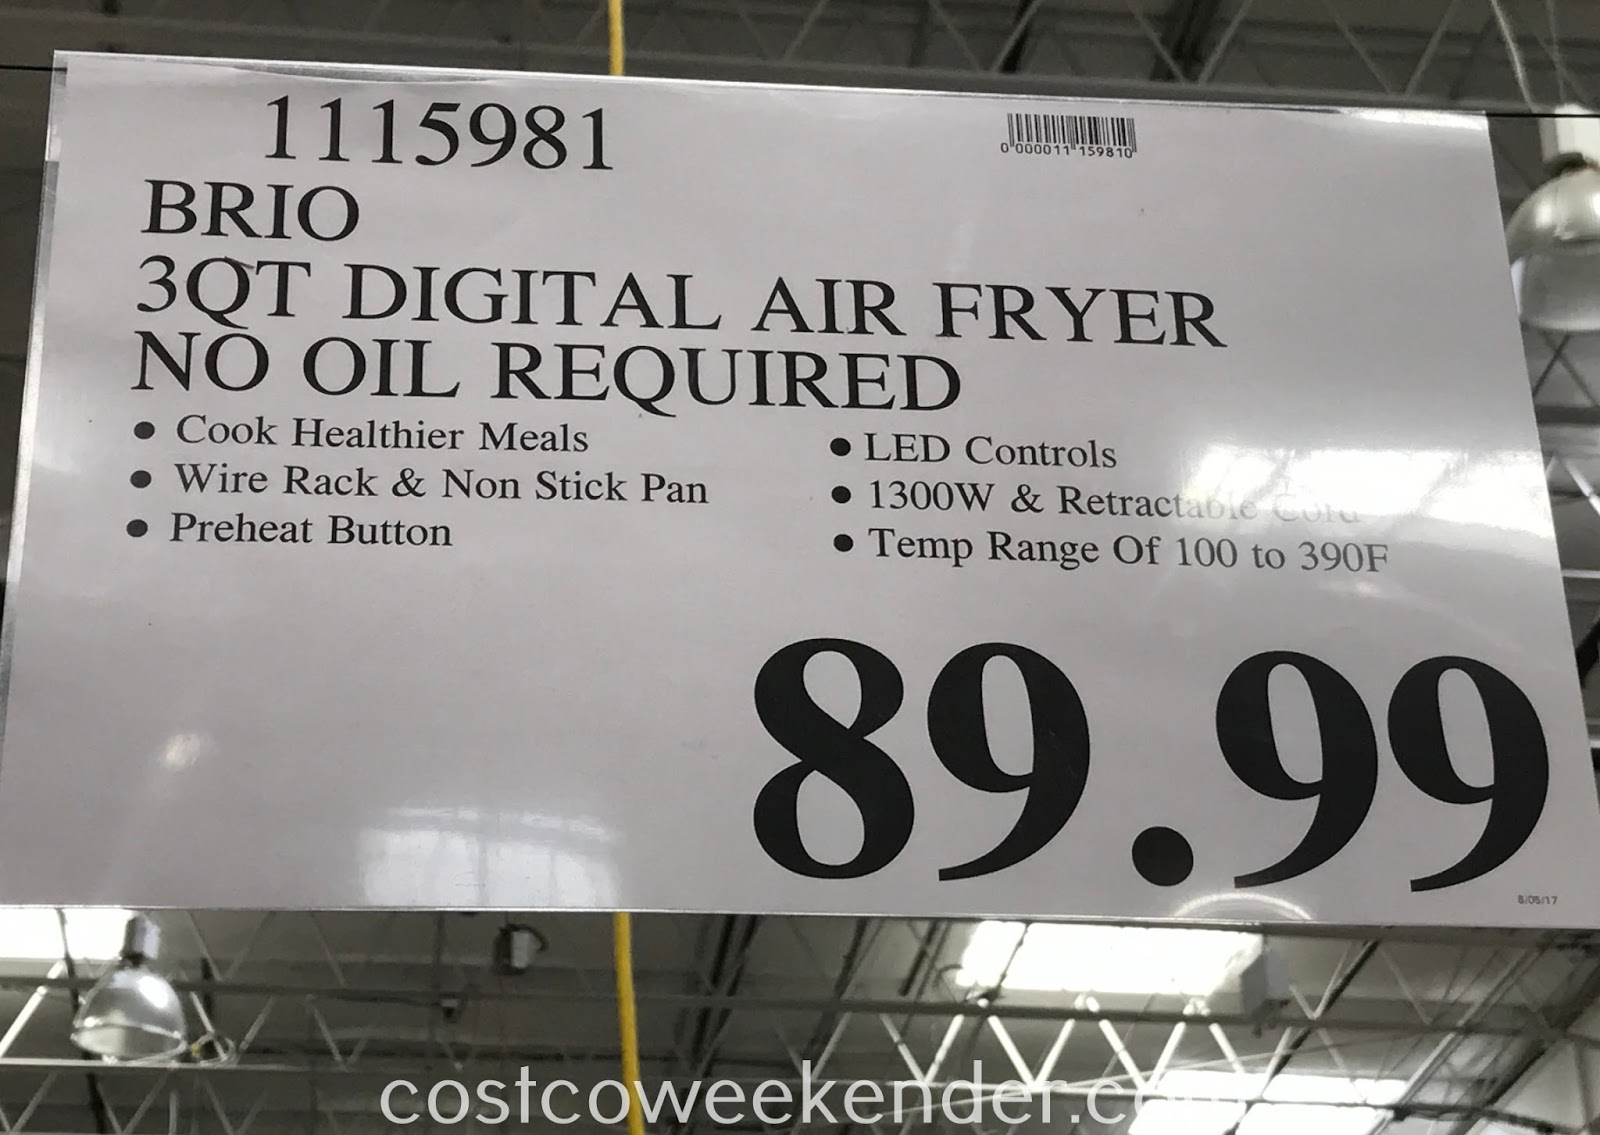 Deal for the Nuwave Brio Digital Air Fryer at Costco